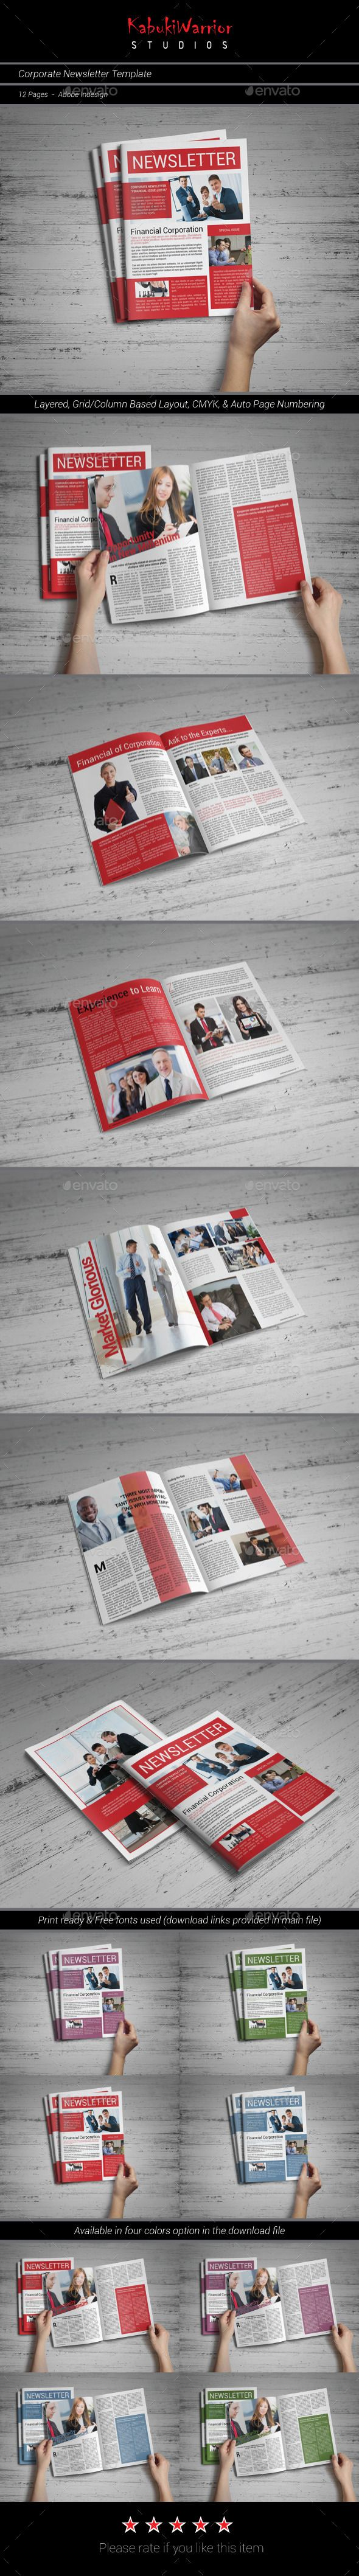 Corporate Newsletter Template - Newsletters Print Templates Download ...